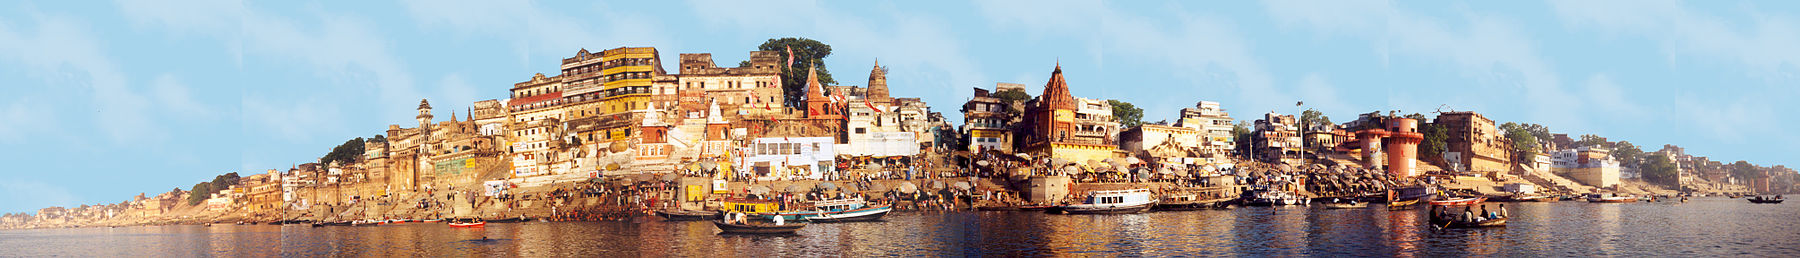 A view of the Ghat of Varanasi from the River Ganges - Varanasi